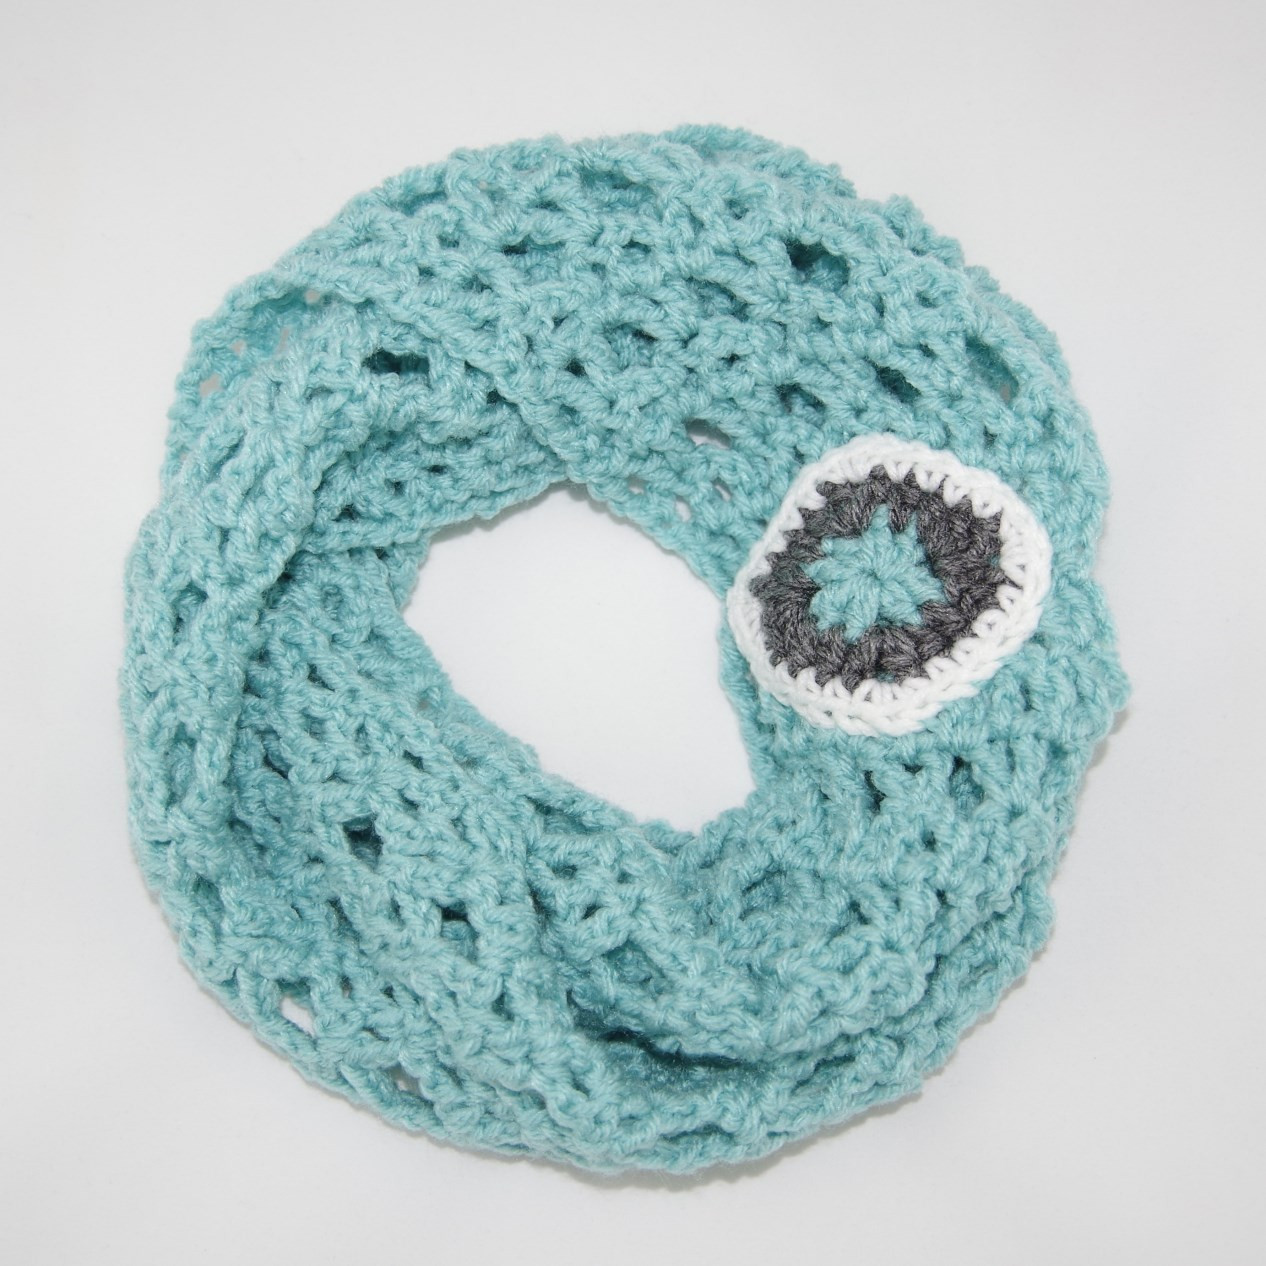 Awesome How to Crochet A Scarf for Beginners Step by Step Slowly Infinity Cowl Crochet Pattern Of New 32 Super Easy Crochet Infinity Scarf Ideas Infinity Cowl Crochet Pattern